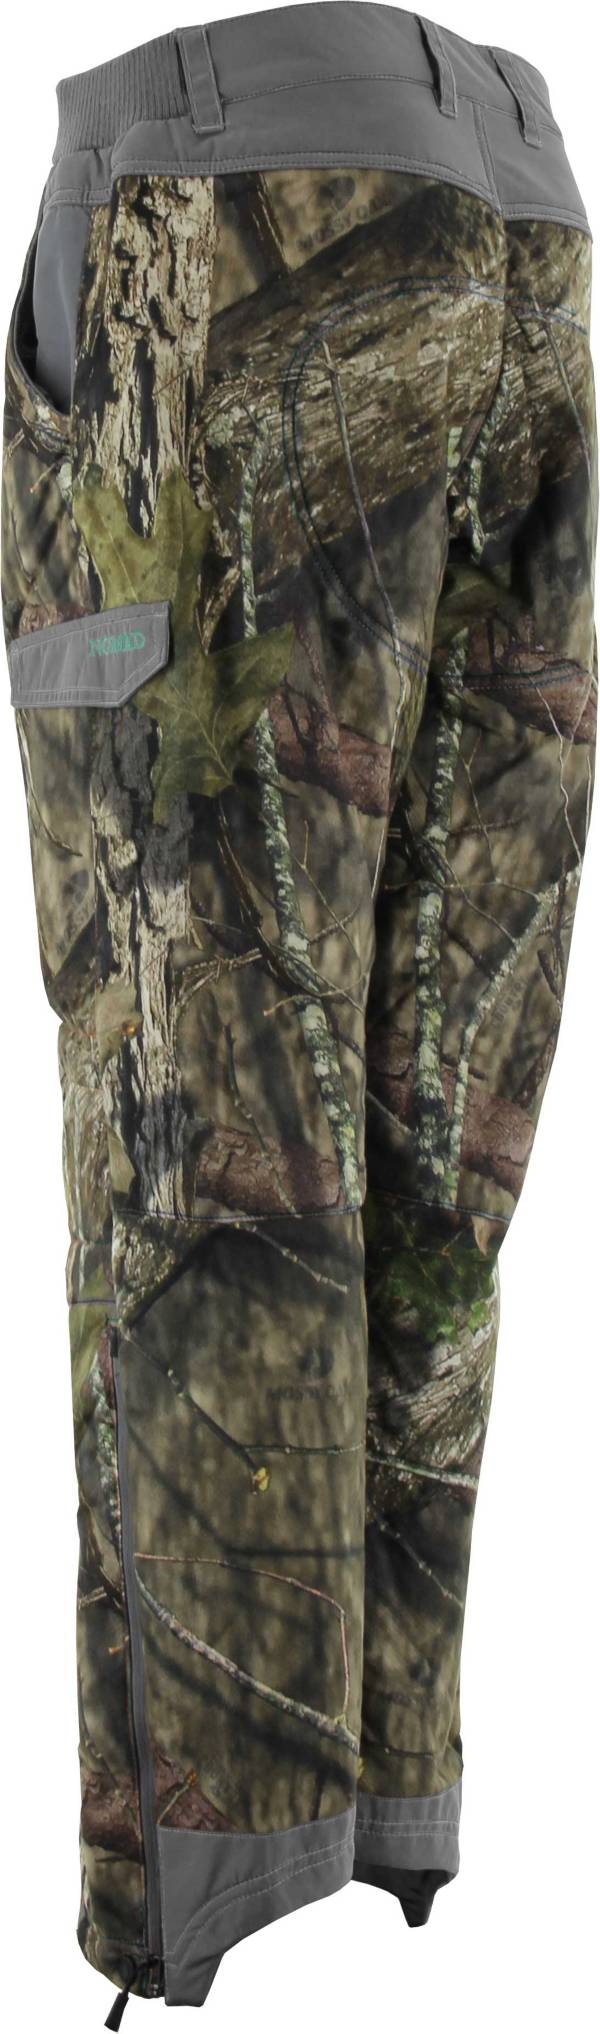 NOMAD Women's Harvester Hunting Pants product image